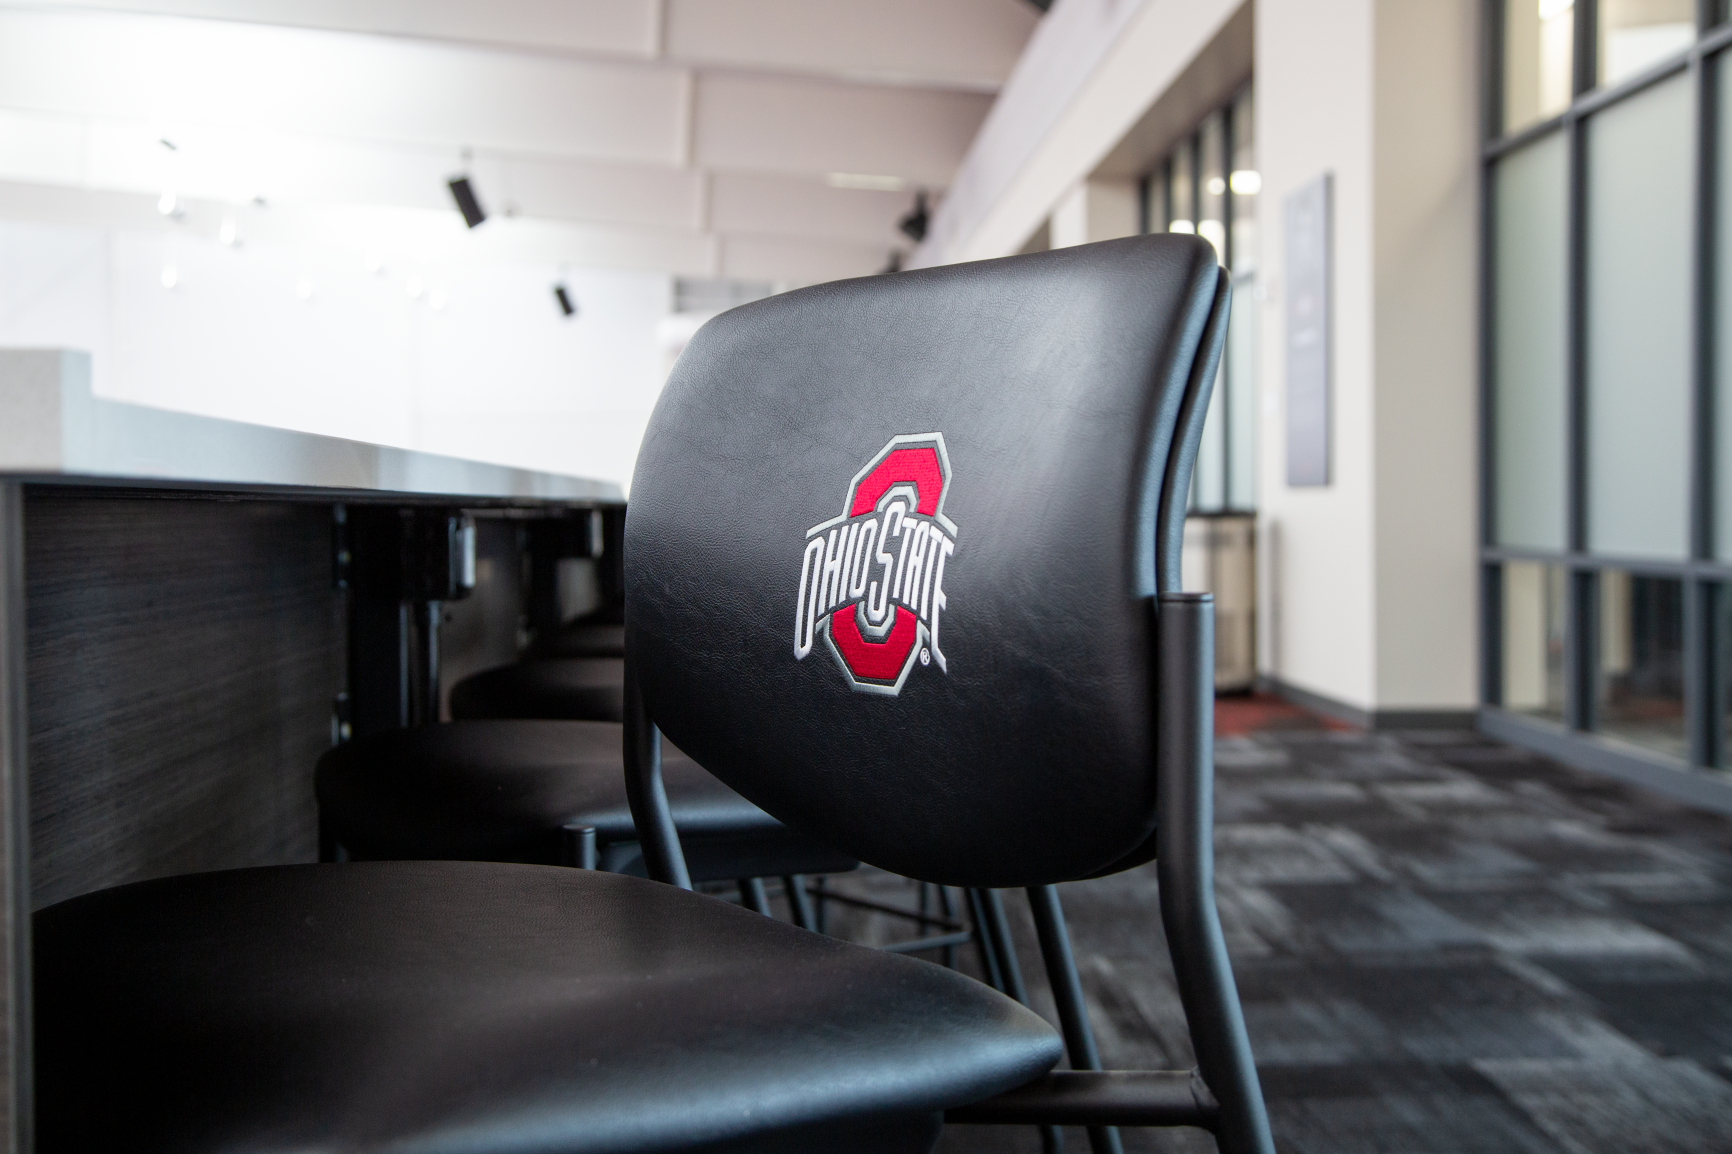 Ty Tucker Tennis Center at The Ohio State University features custom branding solutions and furniture by Continental Office